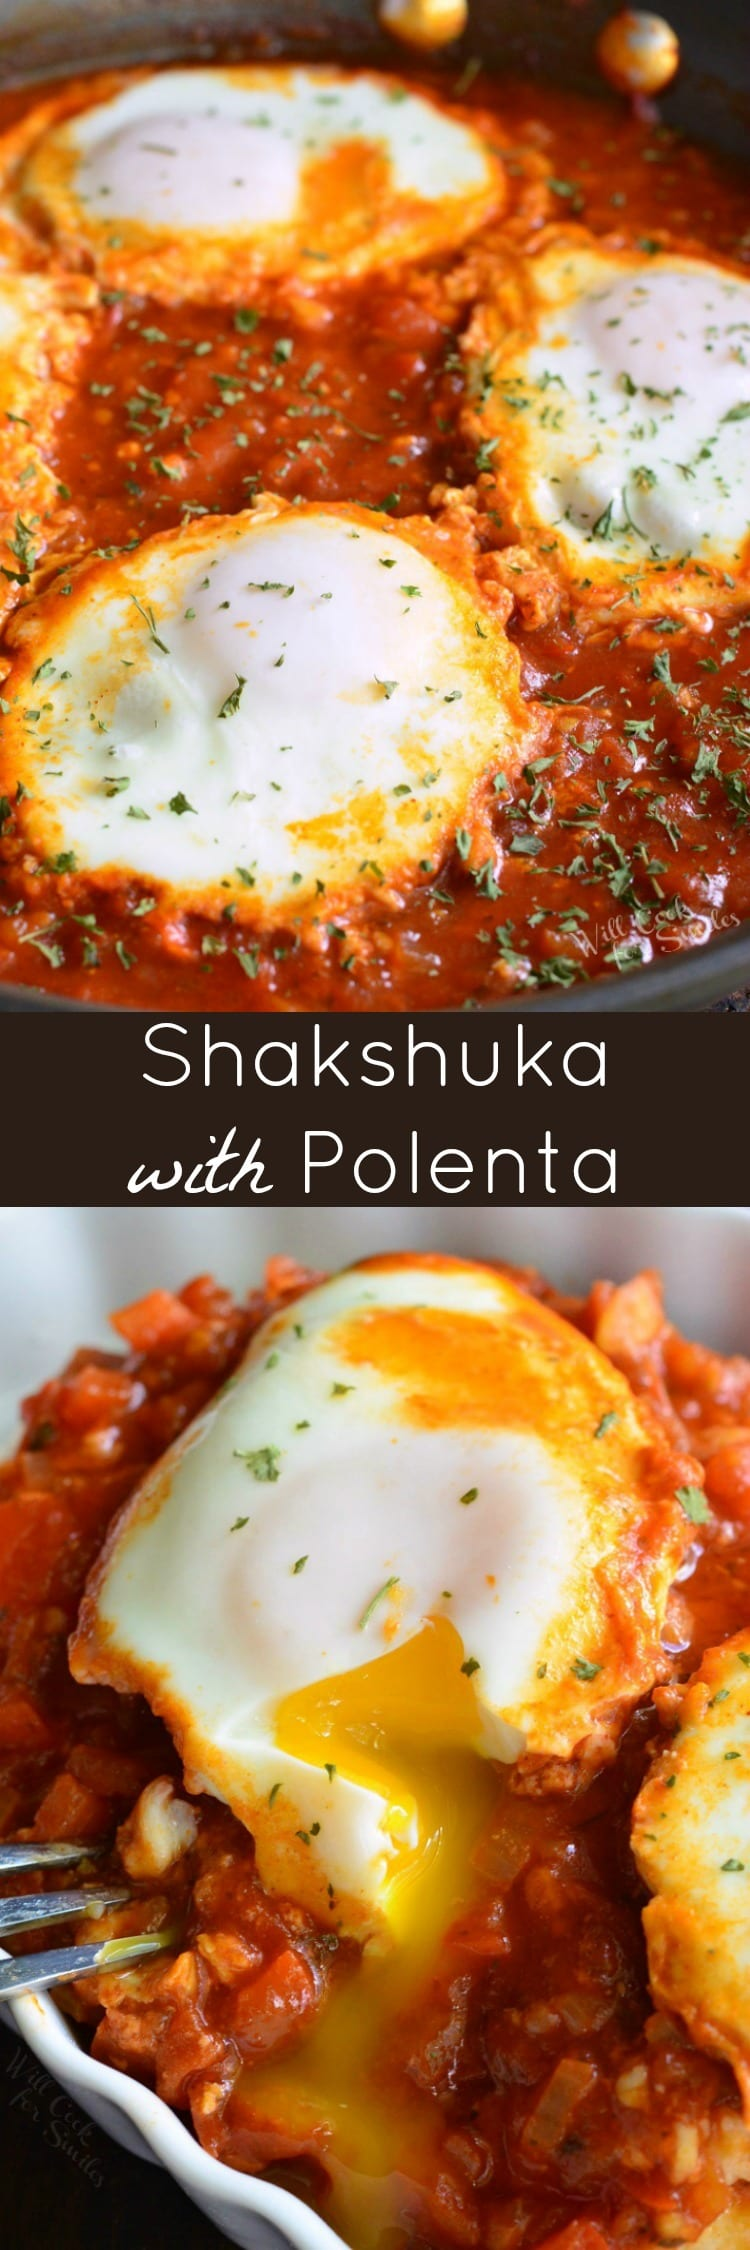 Shakshuka with Parmesan Polenta. Eggs are poached in a delectable mixture of veggies and spices and served over Parmesan cheese flavored polenta. #shakshuka #breakfastrecipe